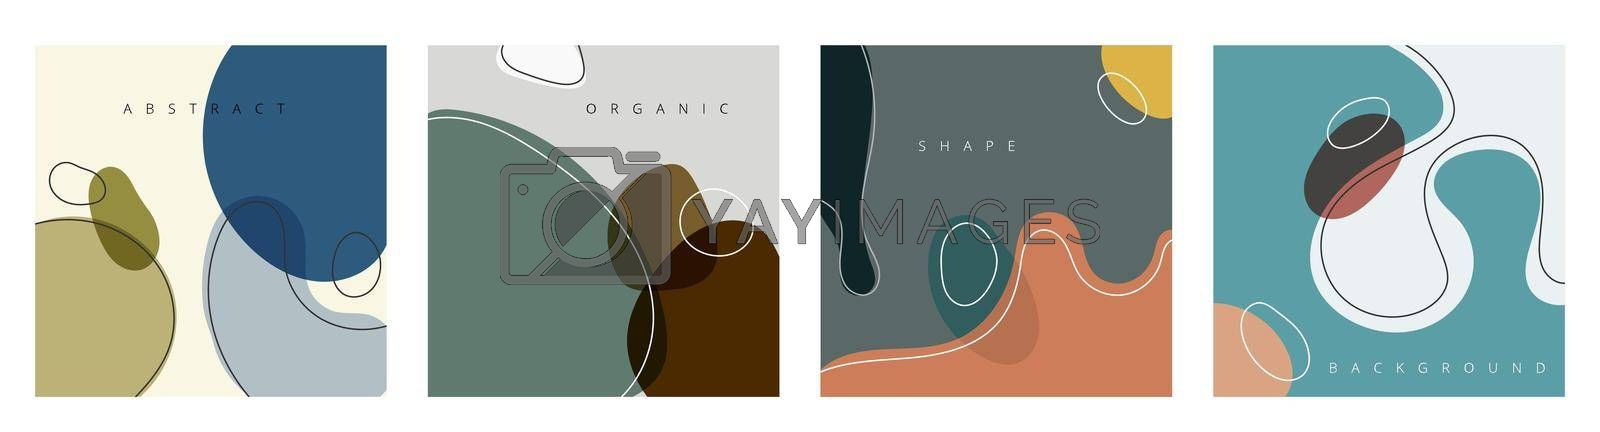 Set of abstract hand drawn creative design backgrounds organic shapes with lines in minimal trendy style. Templates for social media stories and posts. Vector illustration